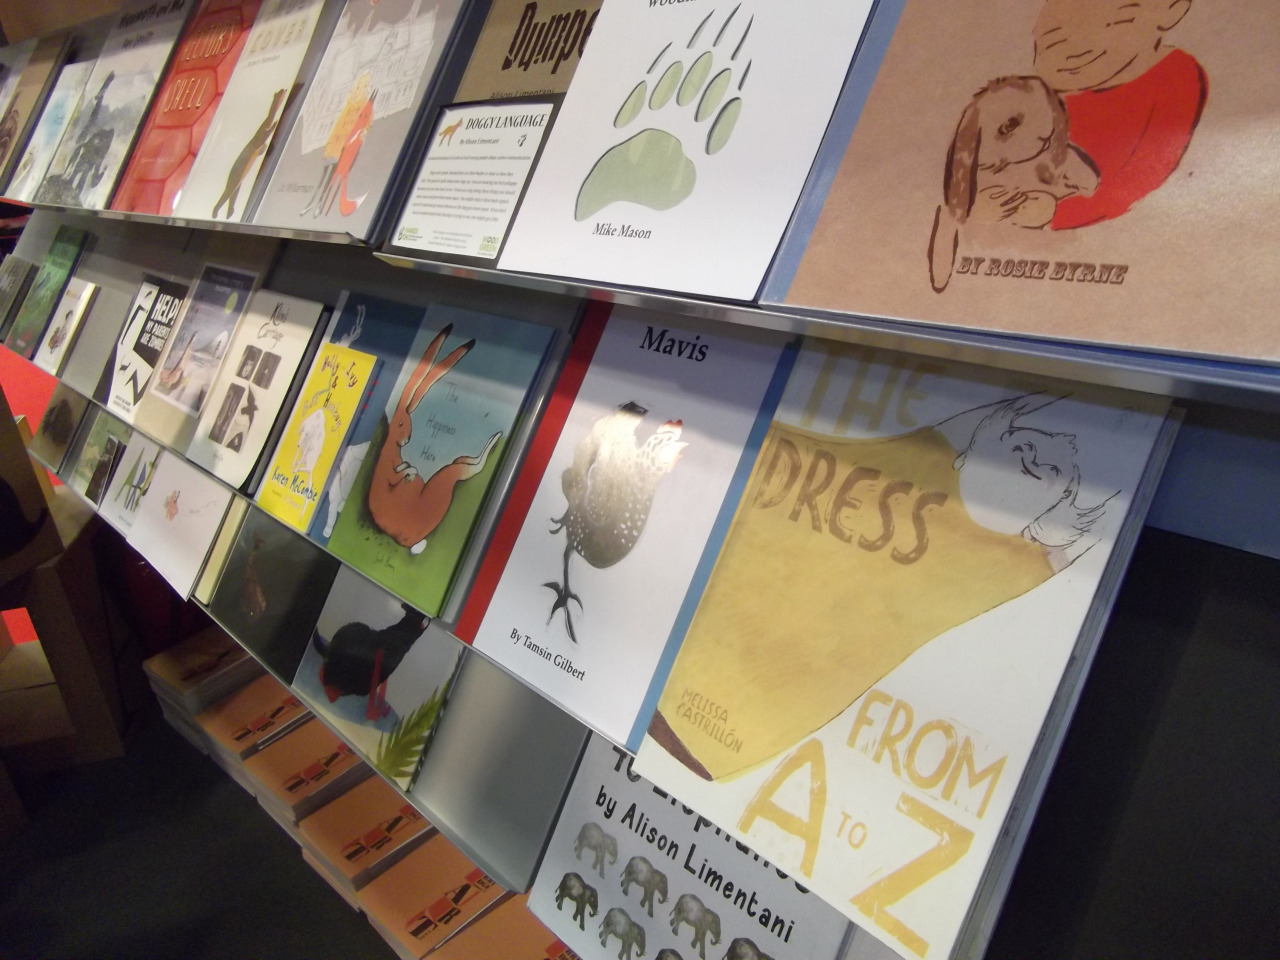 Bologna Children's book fair- A section of all the beautiful dummy books we had on display, my A-Z book in the foreground.